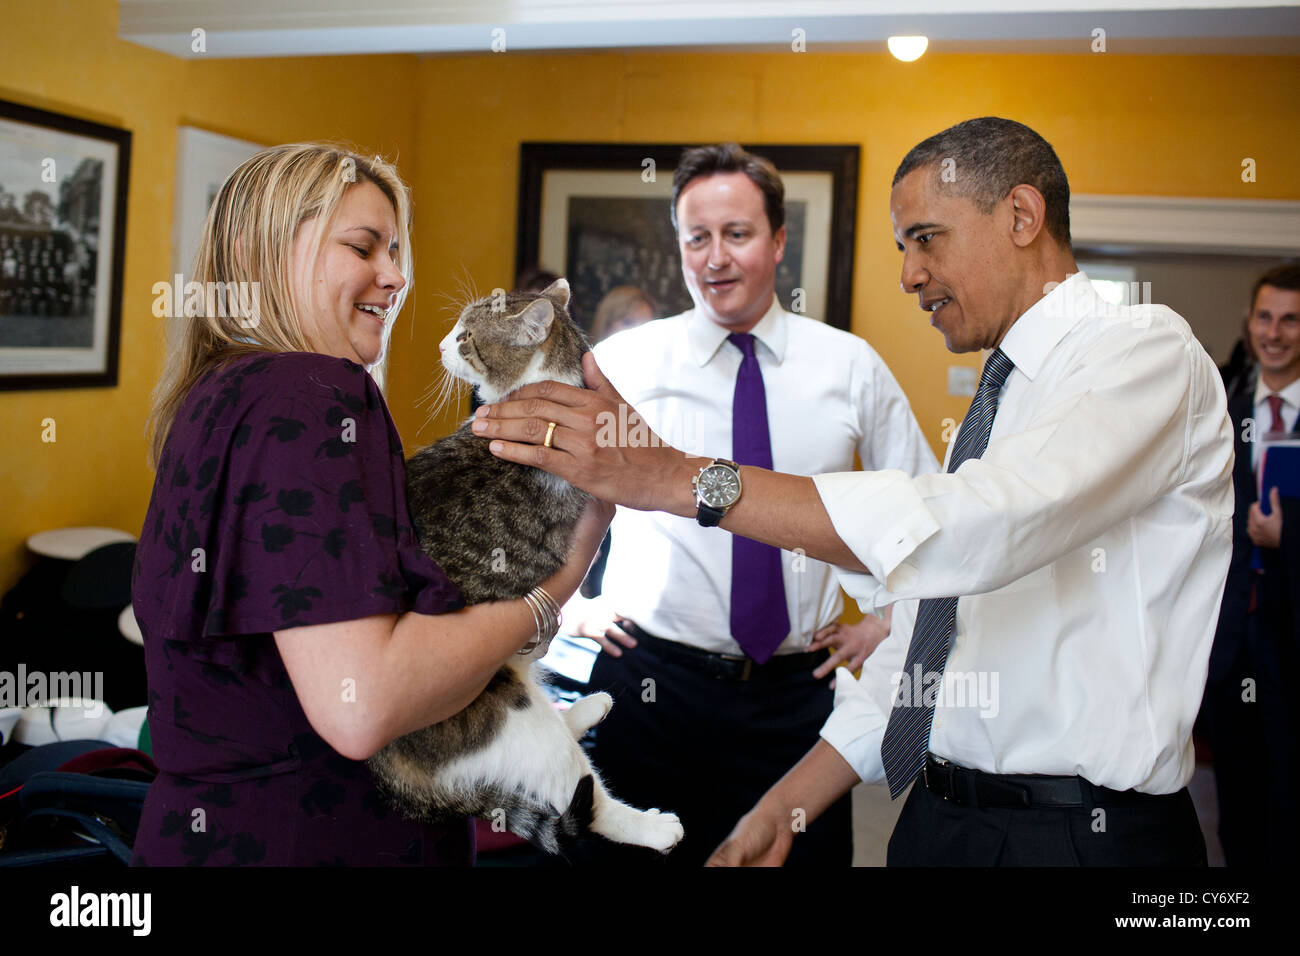 British Prime Minister David Cameron introduces US President Barack Obama to Larry the cat at 10 Downing Street - Stock Image